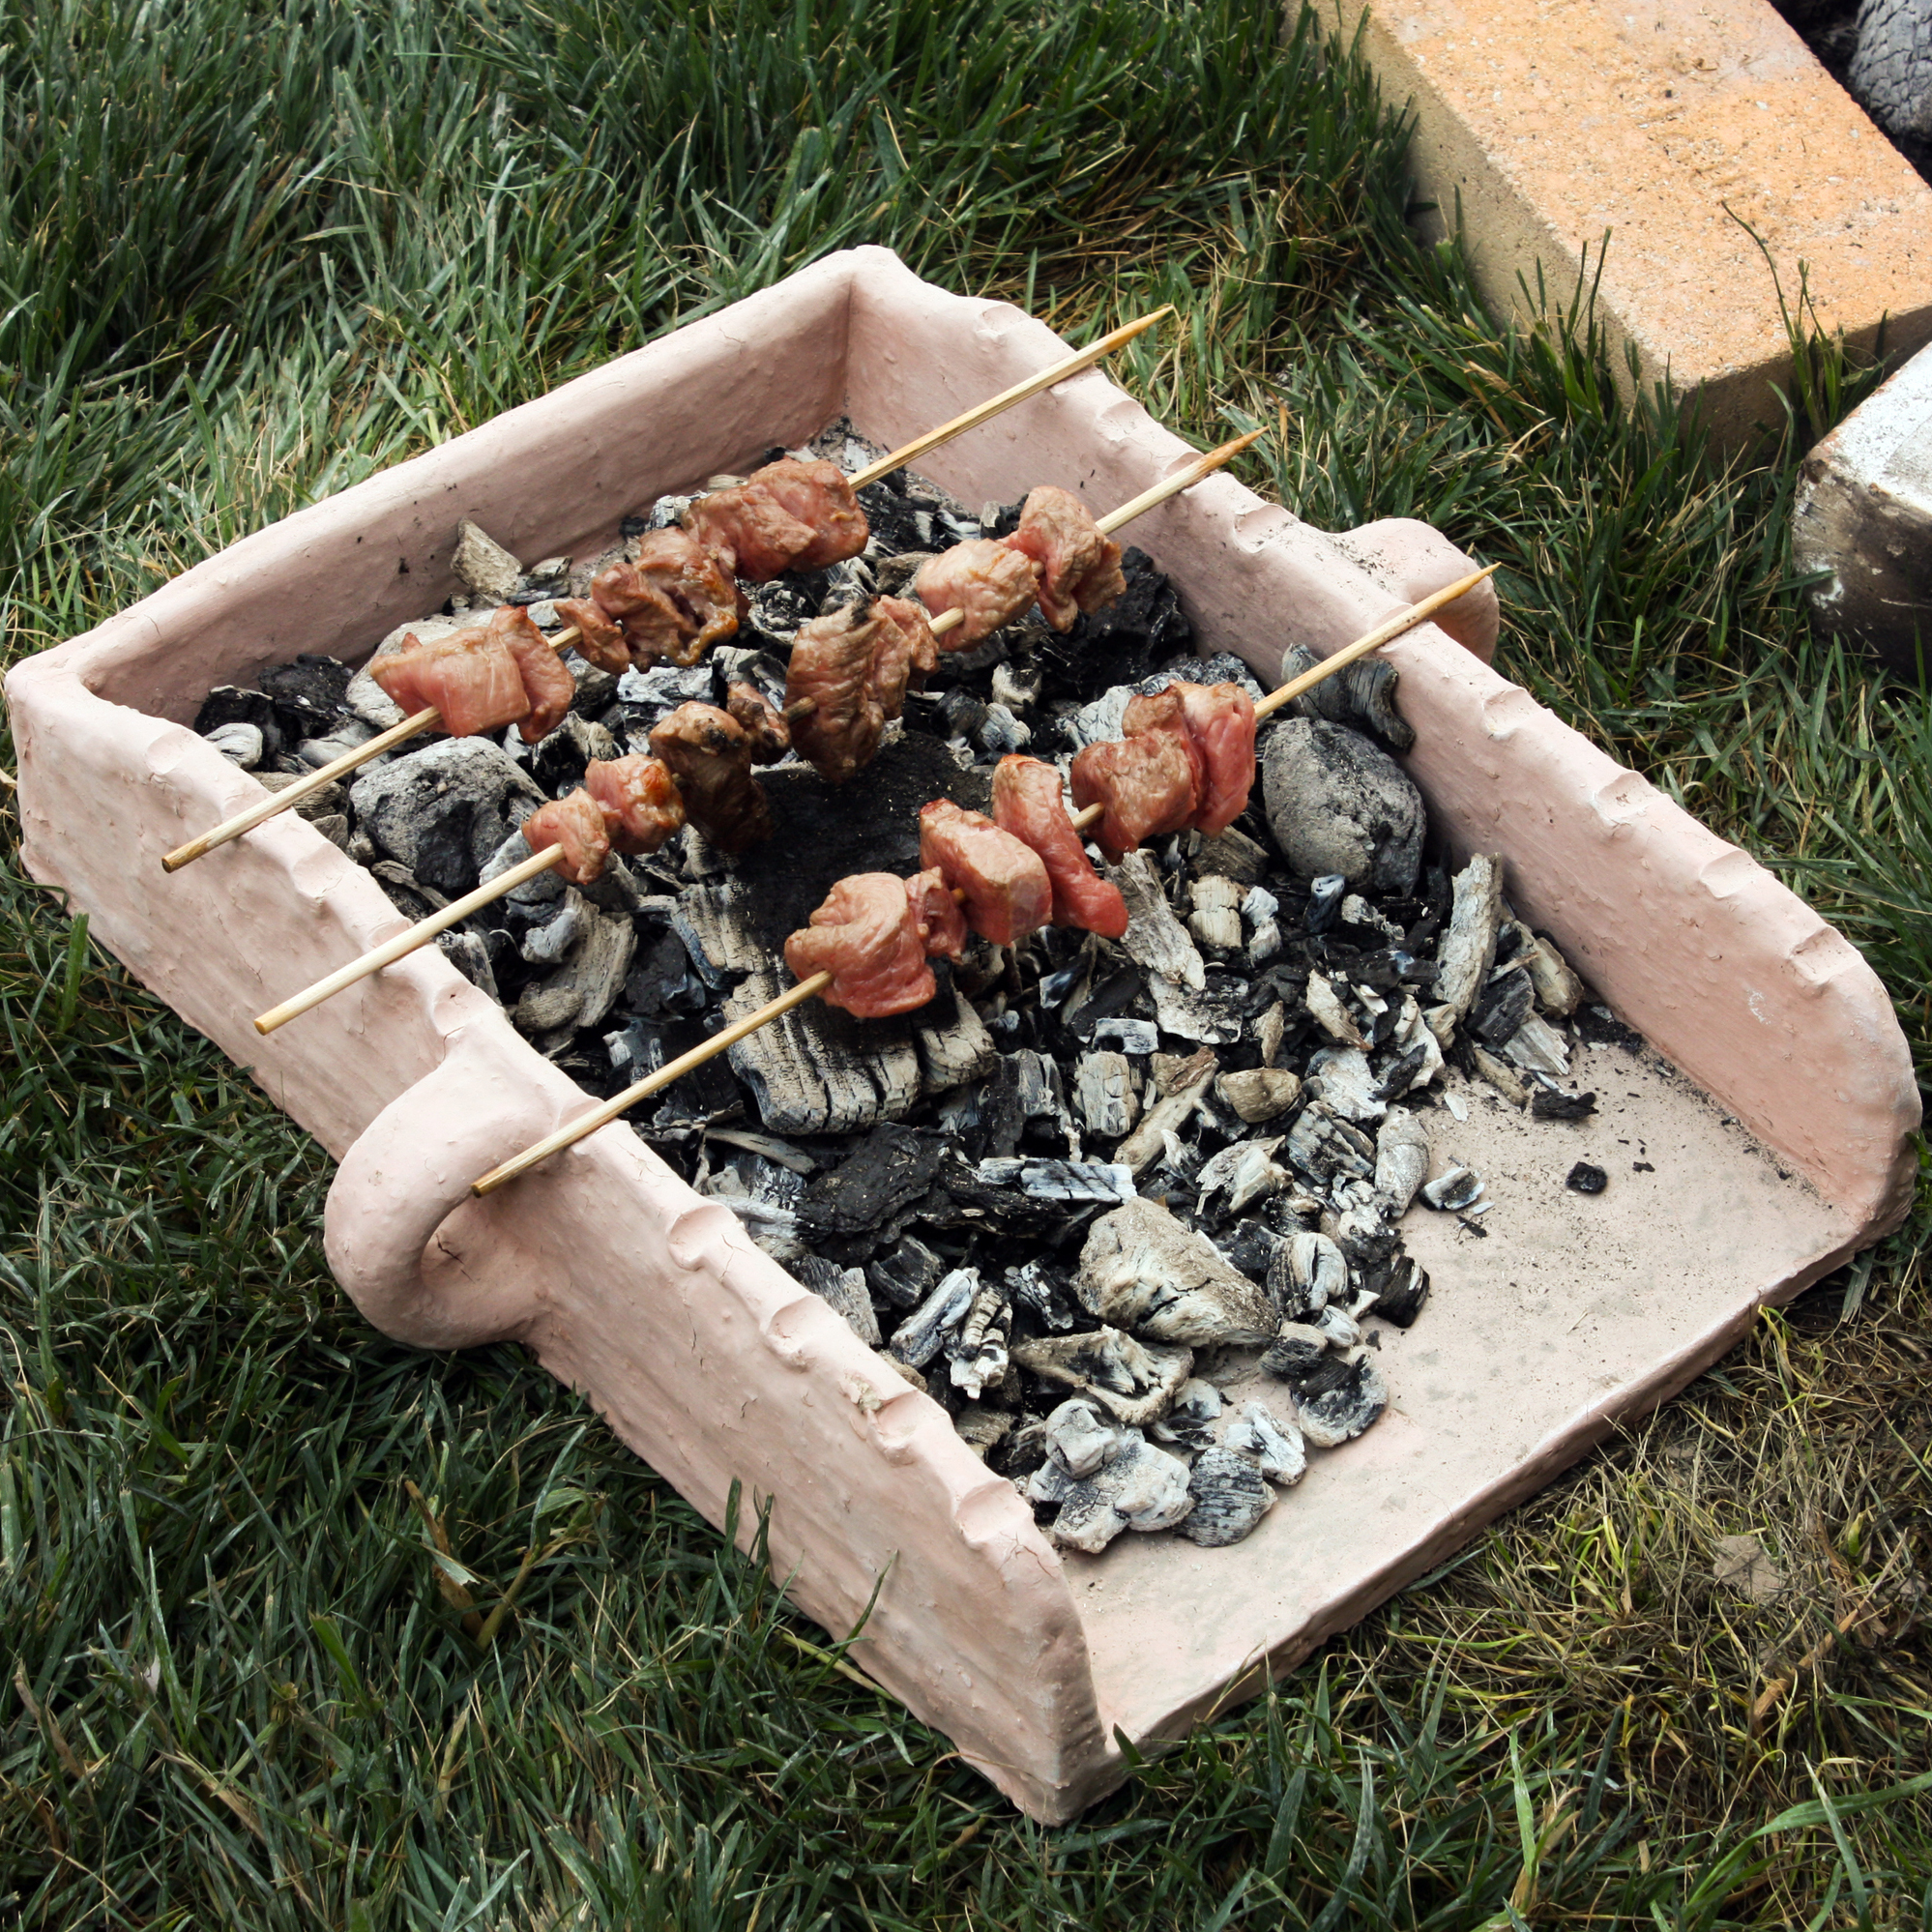 Turns Out The Ancient Greeks Were Quite The Grill Masters